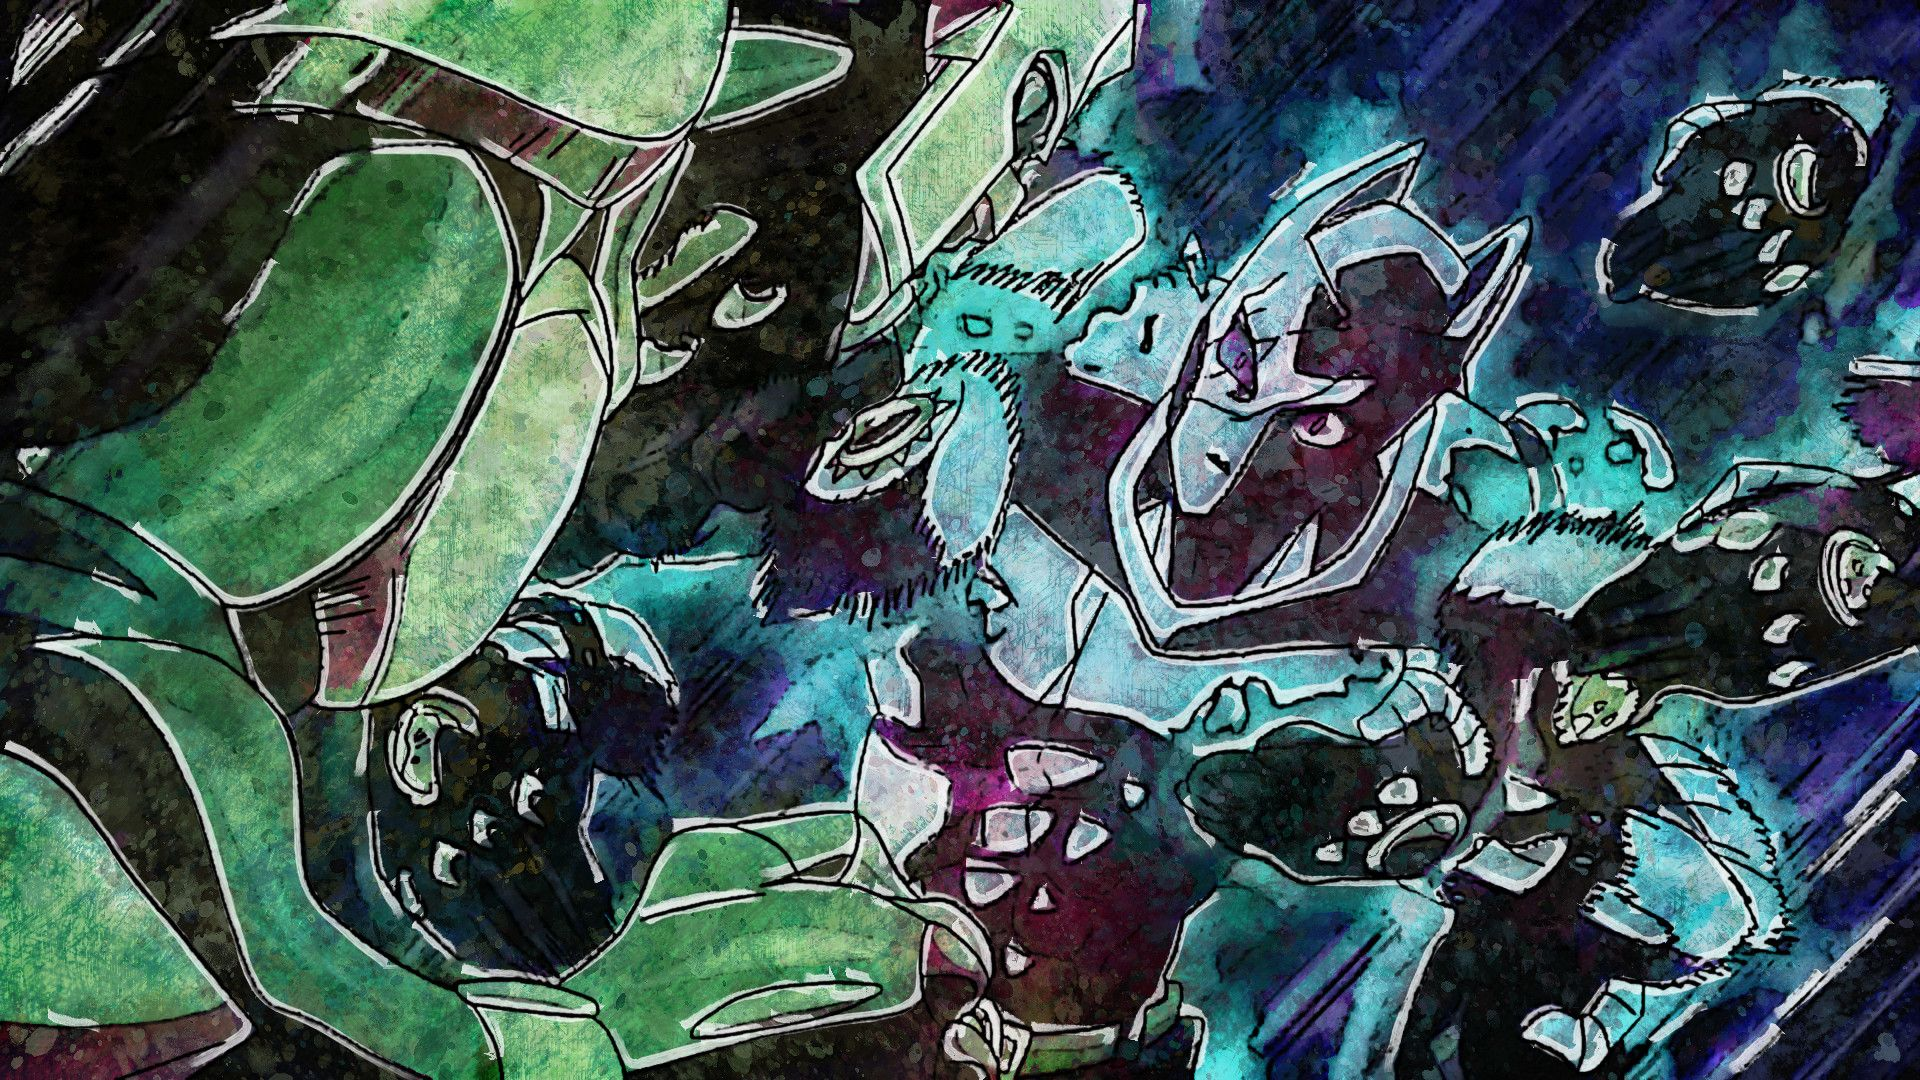 Crazy Diamond Wallpapers Wallpaper Cave All star battle art gallery featuring official character designs, concept art. crazy diamond wallpapers wallpaper cave